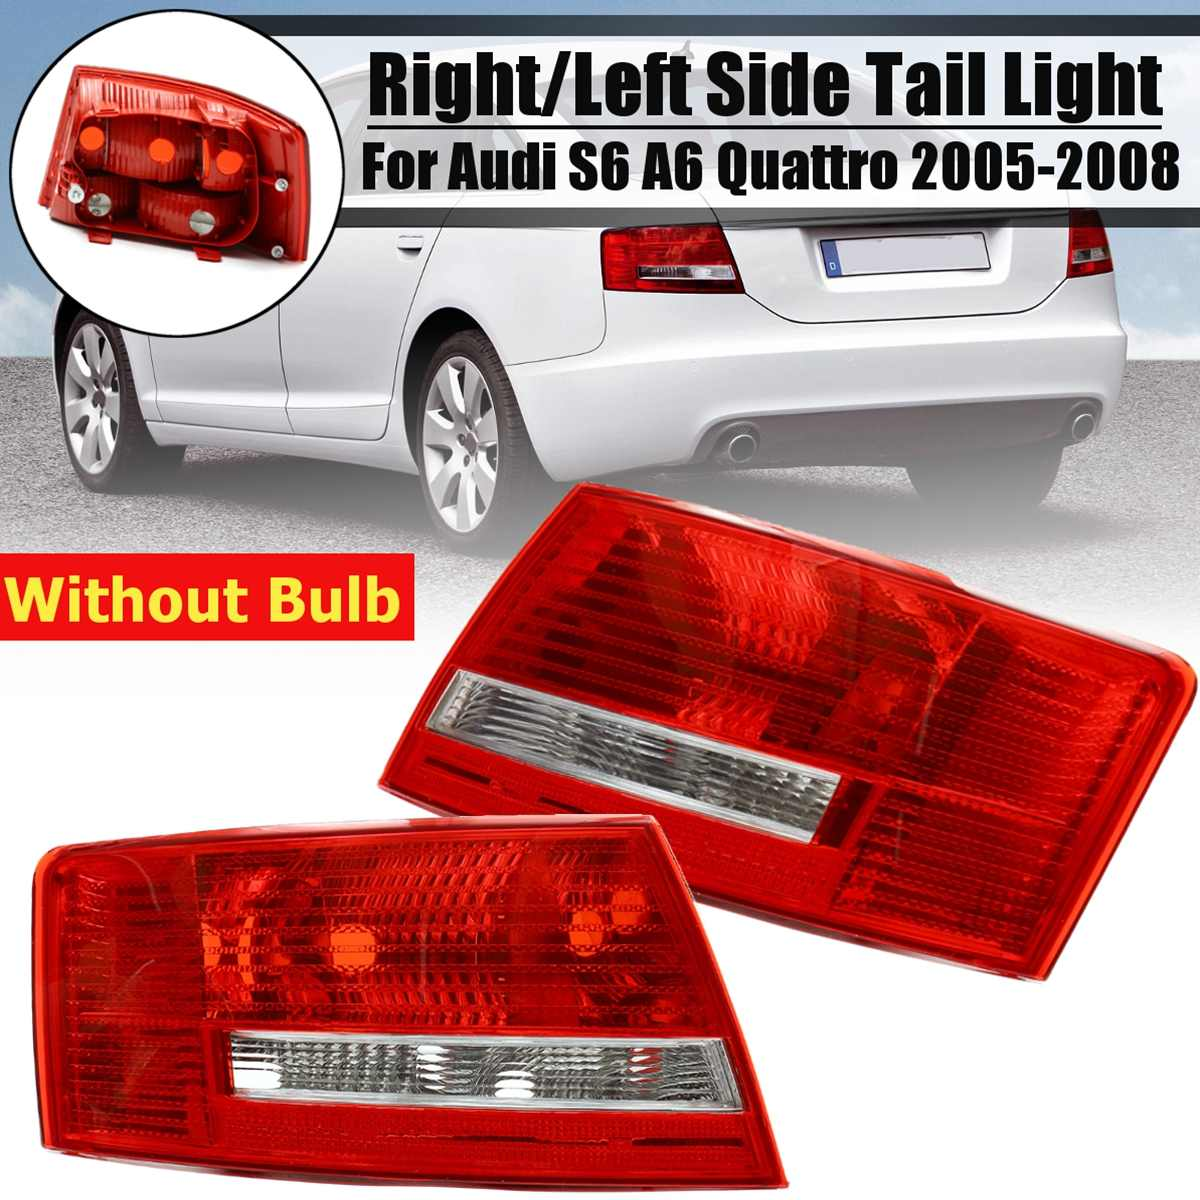 LH RH Rear Outside Light Tail Lamp Assembly For Audi A6 S6 Quattro No wire hardness Bulbs 2005 -2008 4B5 945 095B 4B5 945 096BLH RH Rear Outside Light Tail Lamp Assembly For Audi A6 S6 Quattro No wire hardness Bulbs 2005 -2008 4B5 945 095B 4B5 945 096B